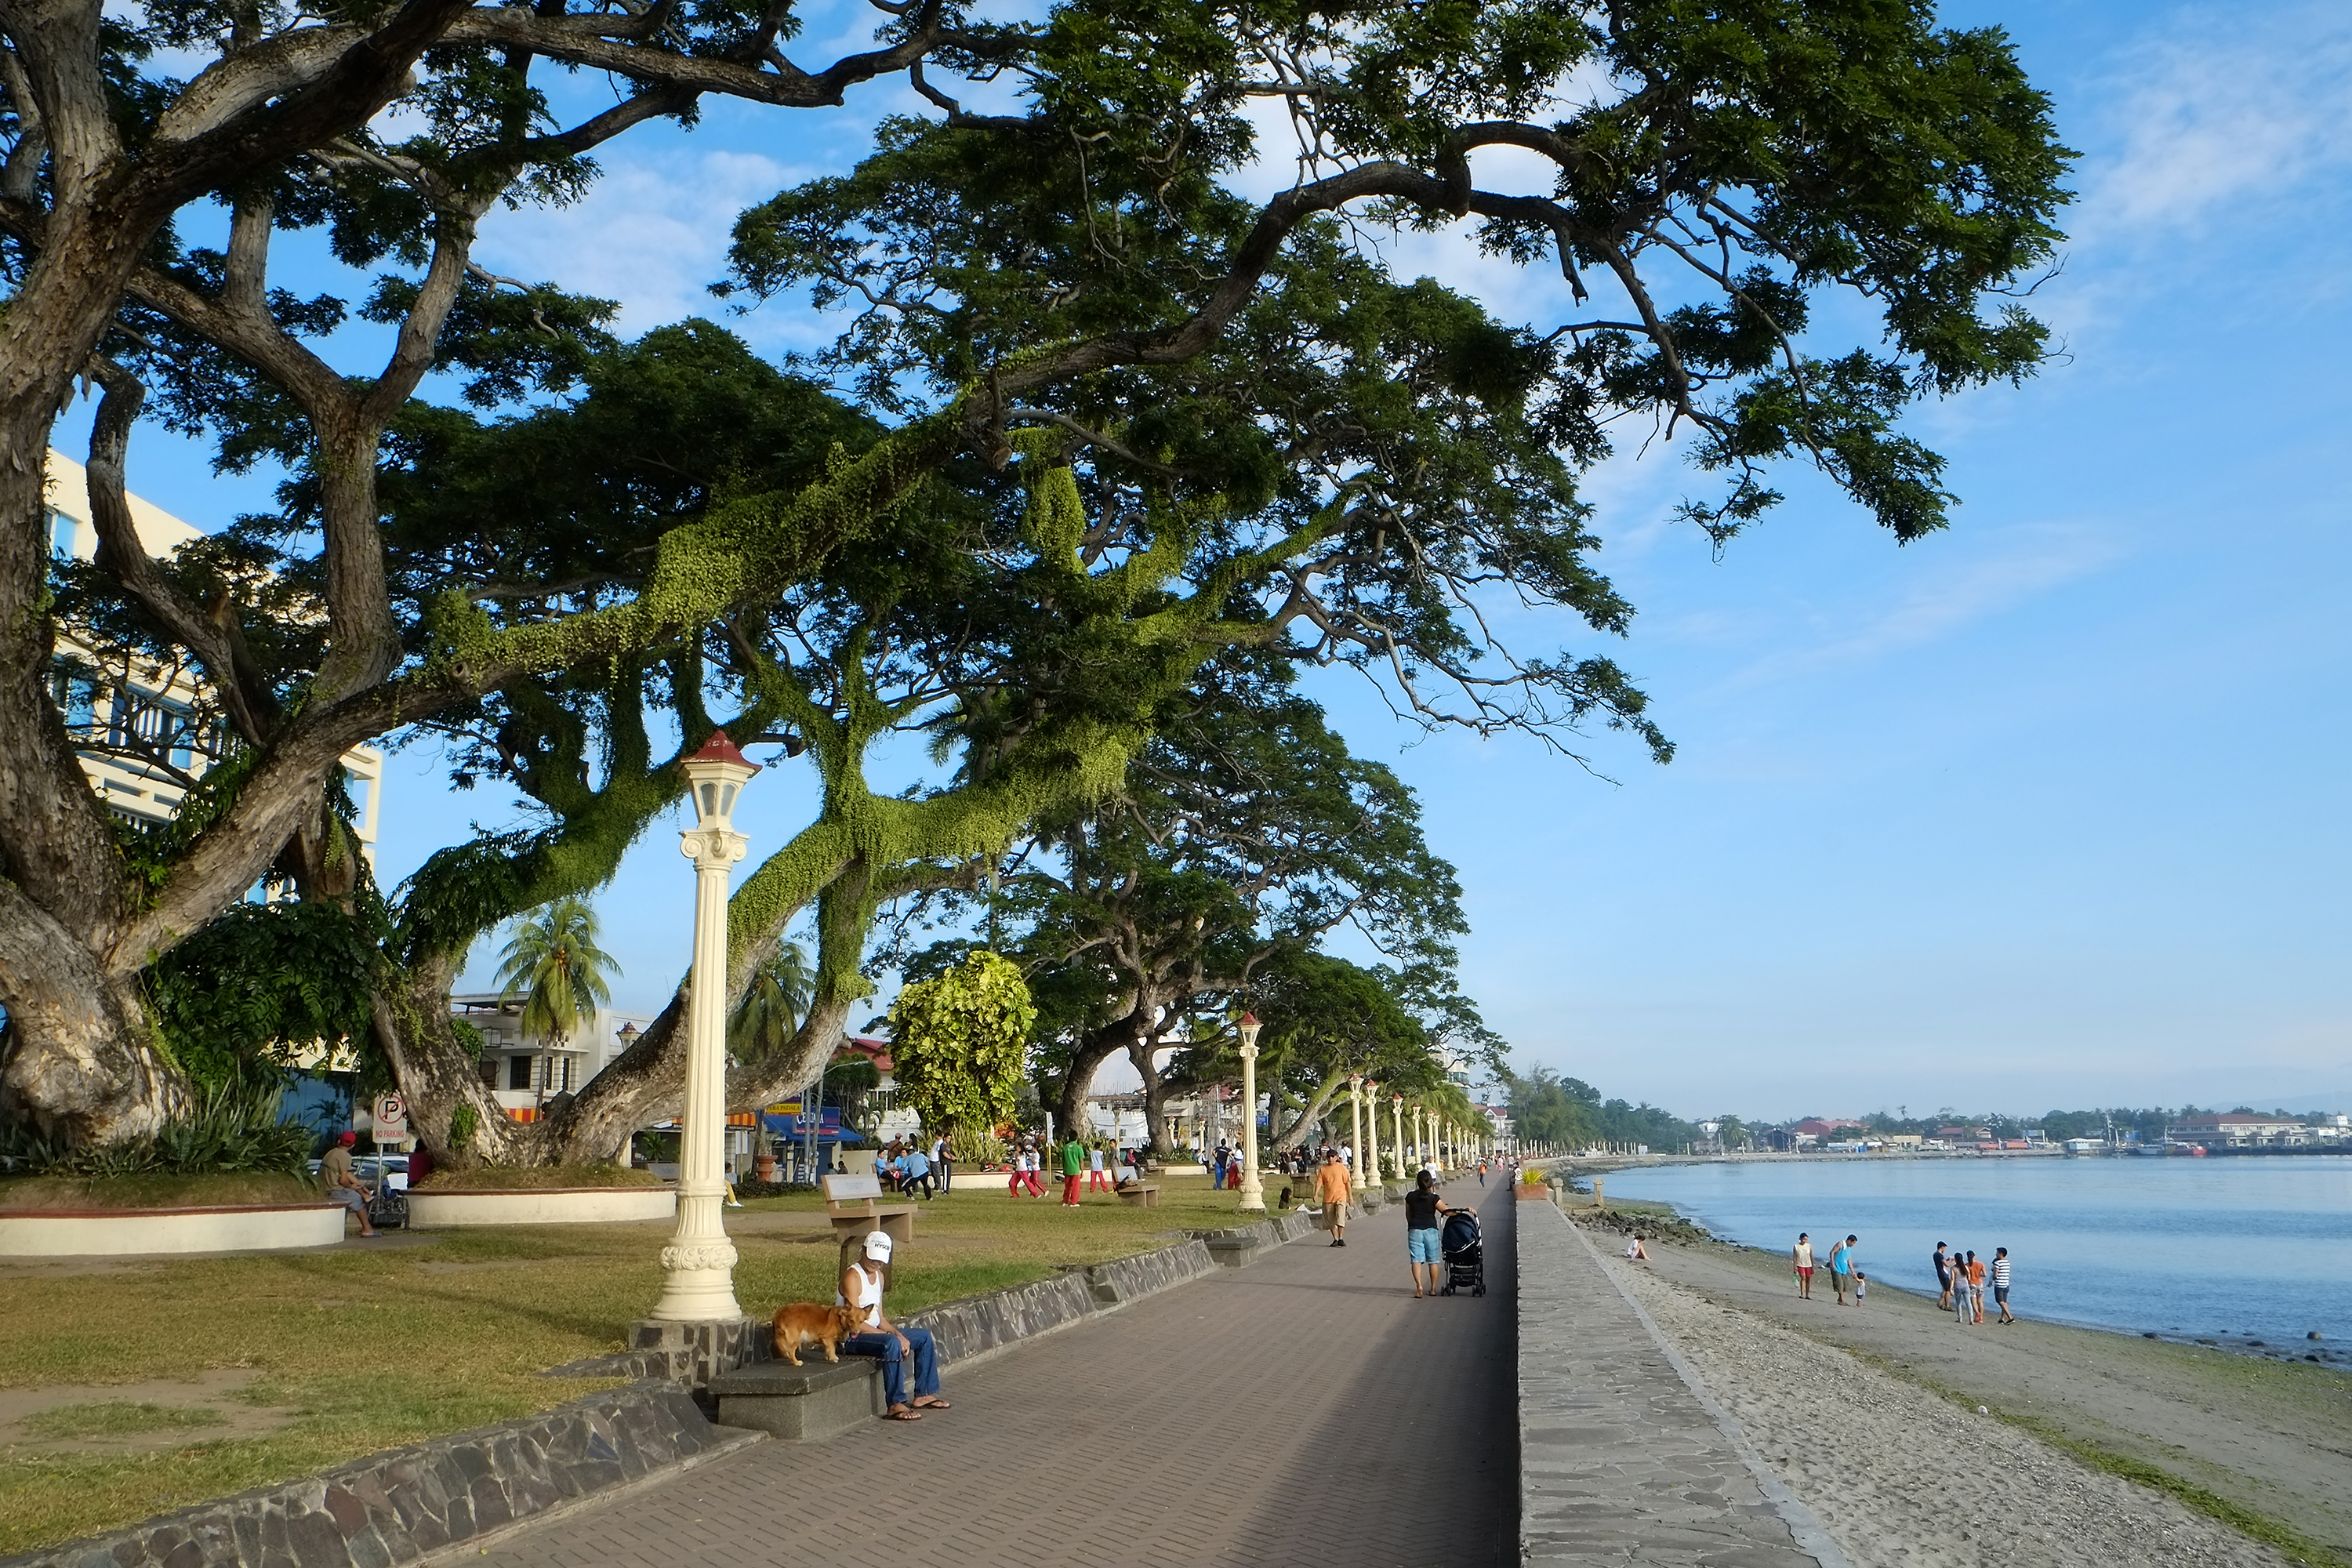 Rizal Boulevard is the perfect spot to watch the view in Dumaguete